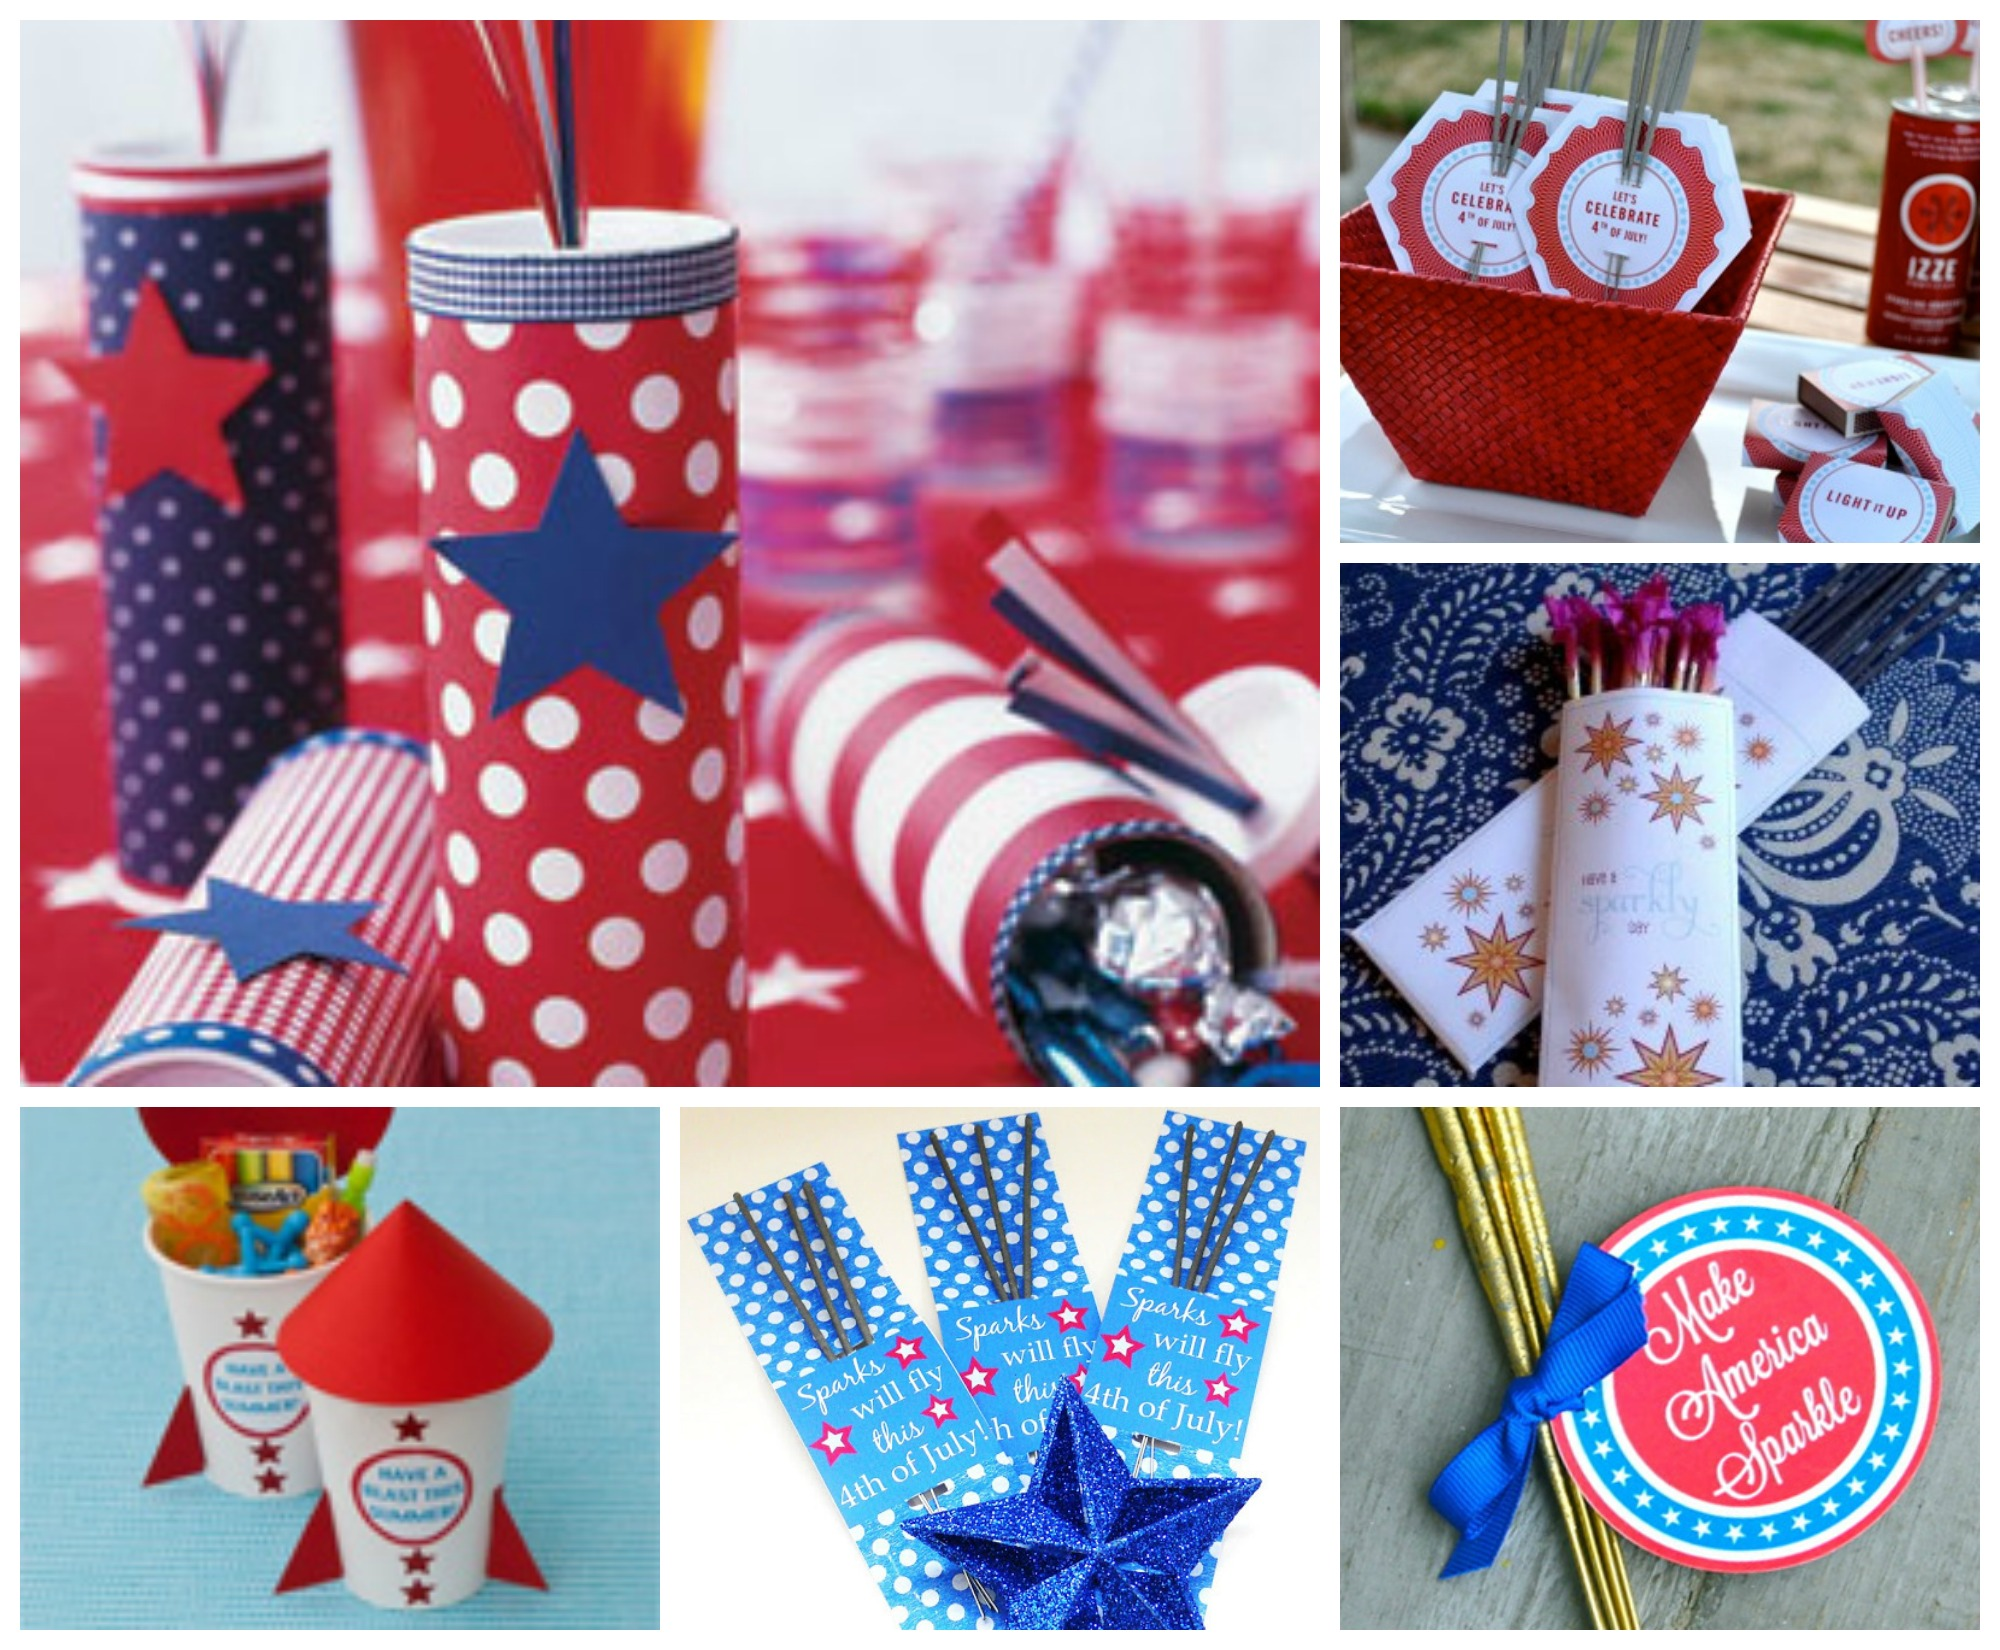 July 4th Fun Knick-Knack Gifts